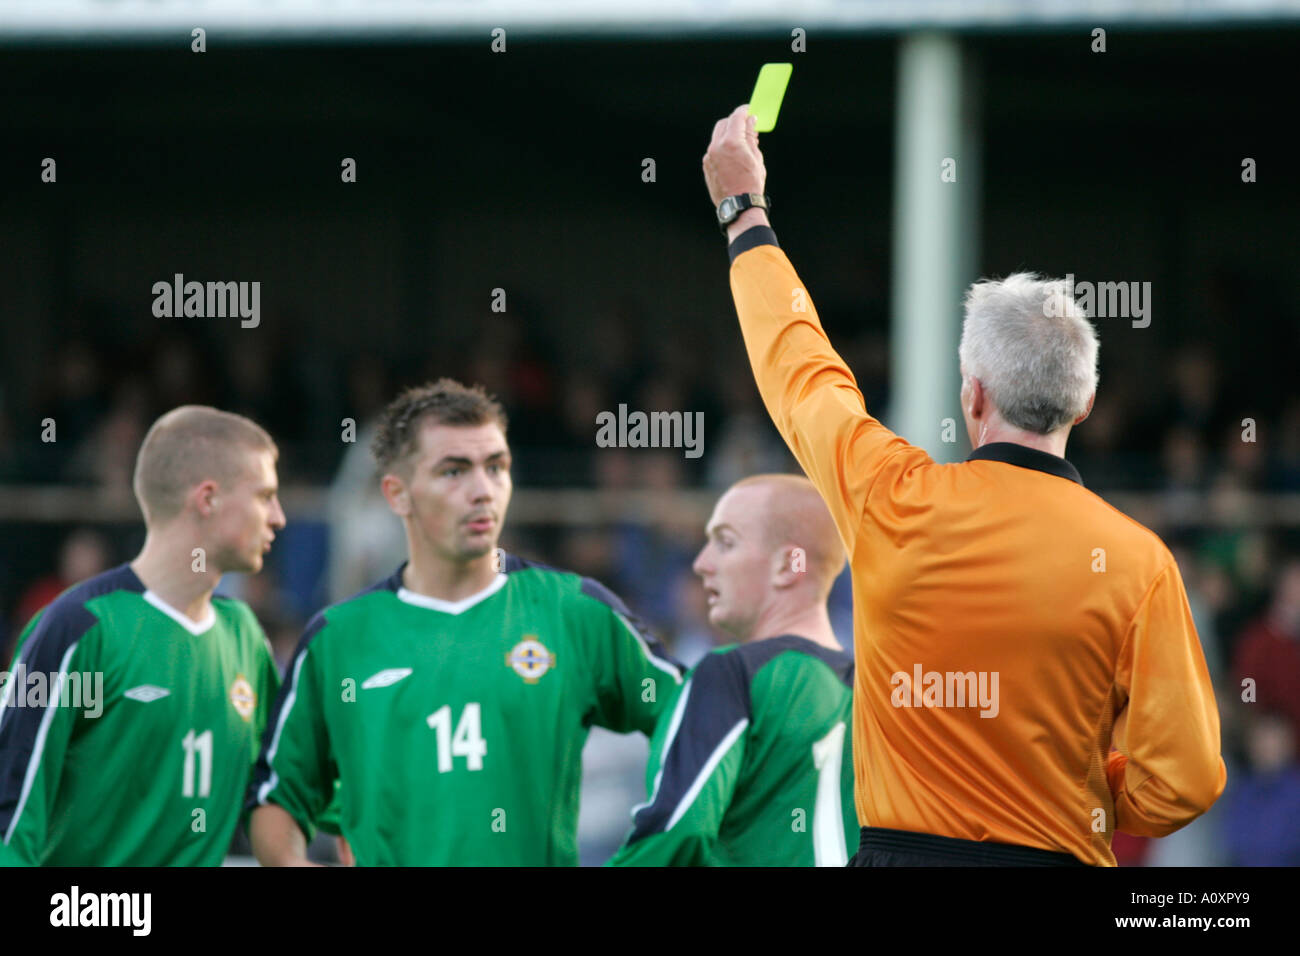 The referee hands out a yellow caution card to northern ireland players Northern Ireland v USA Northern Ireland Milk Cup - Stock Image